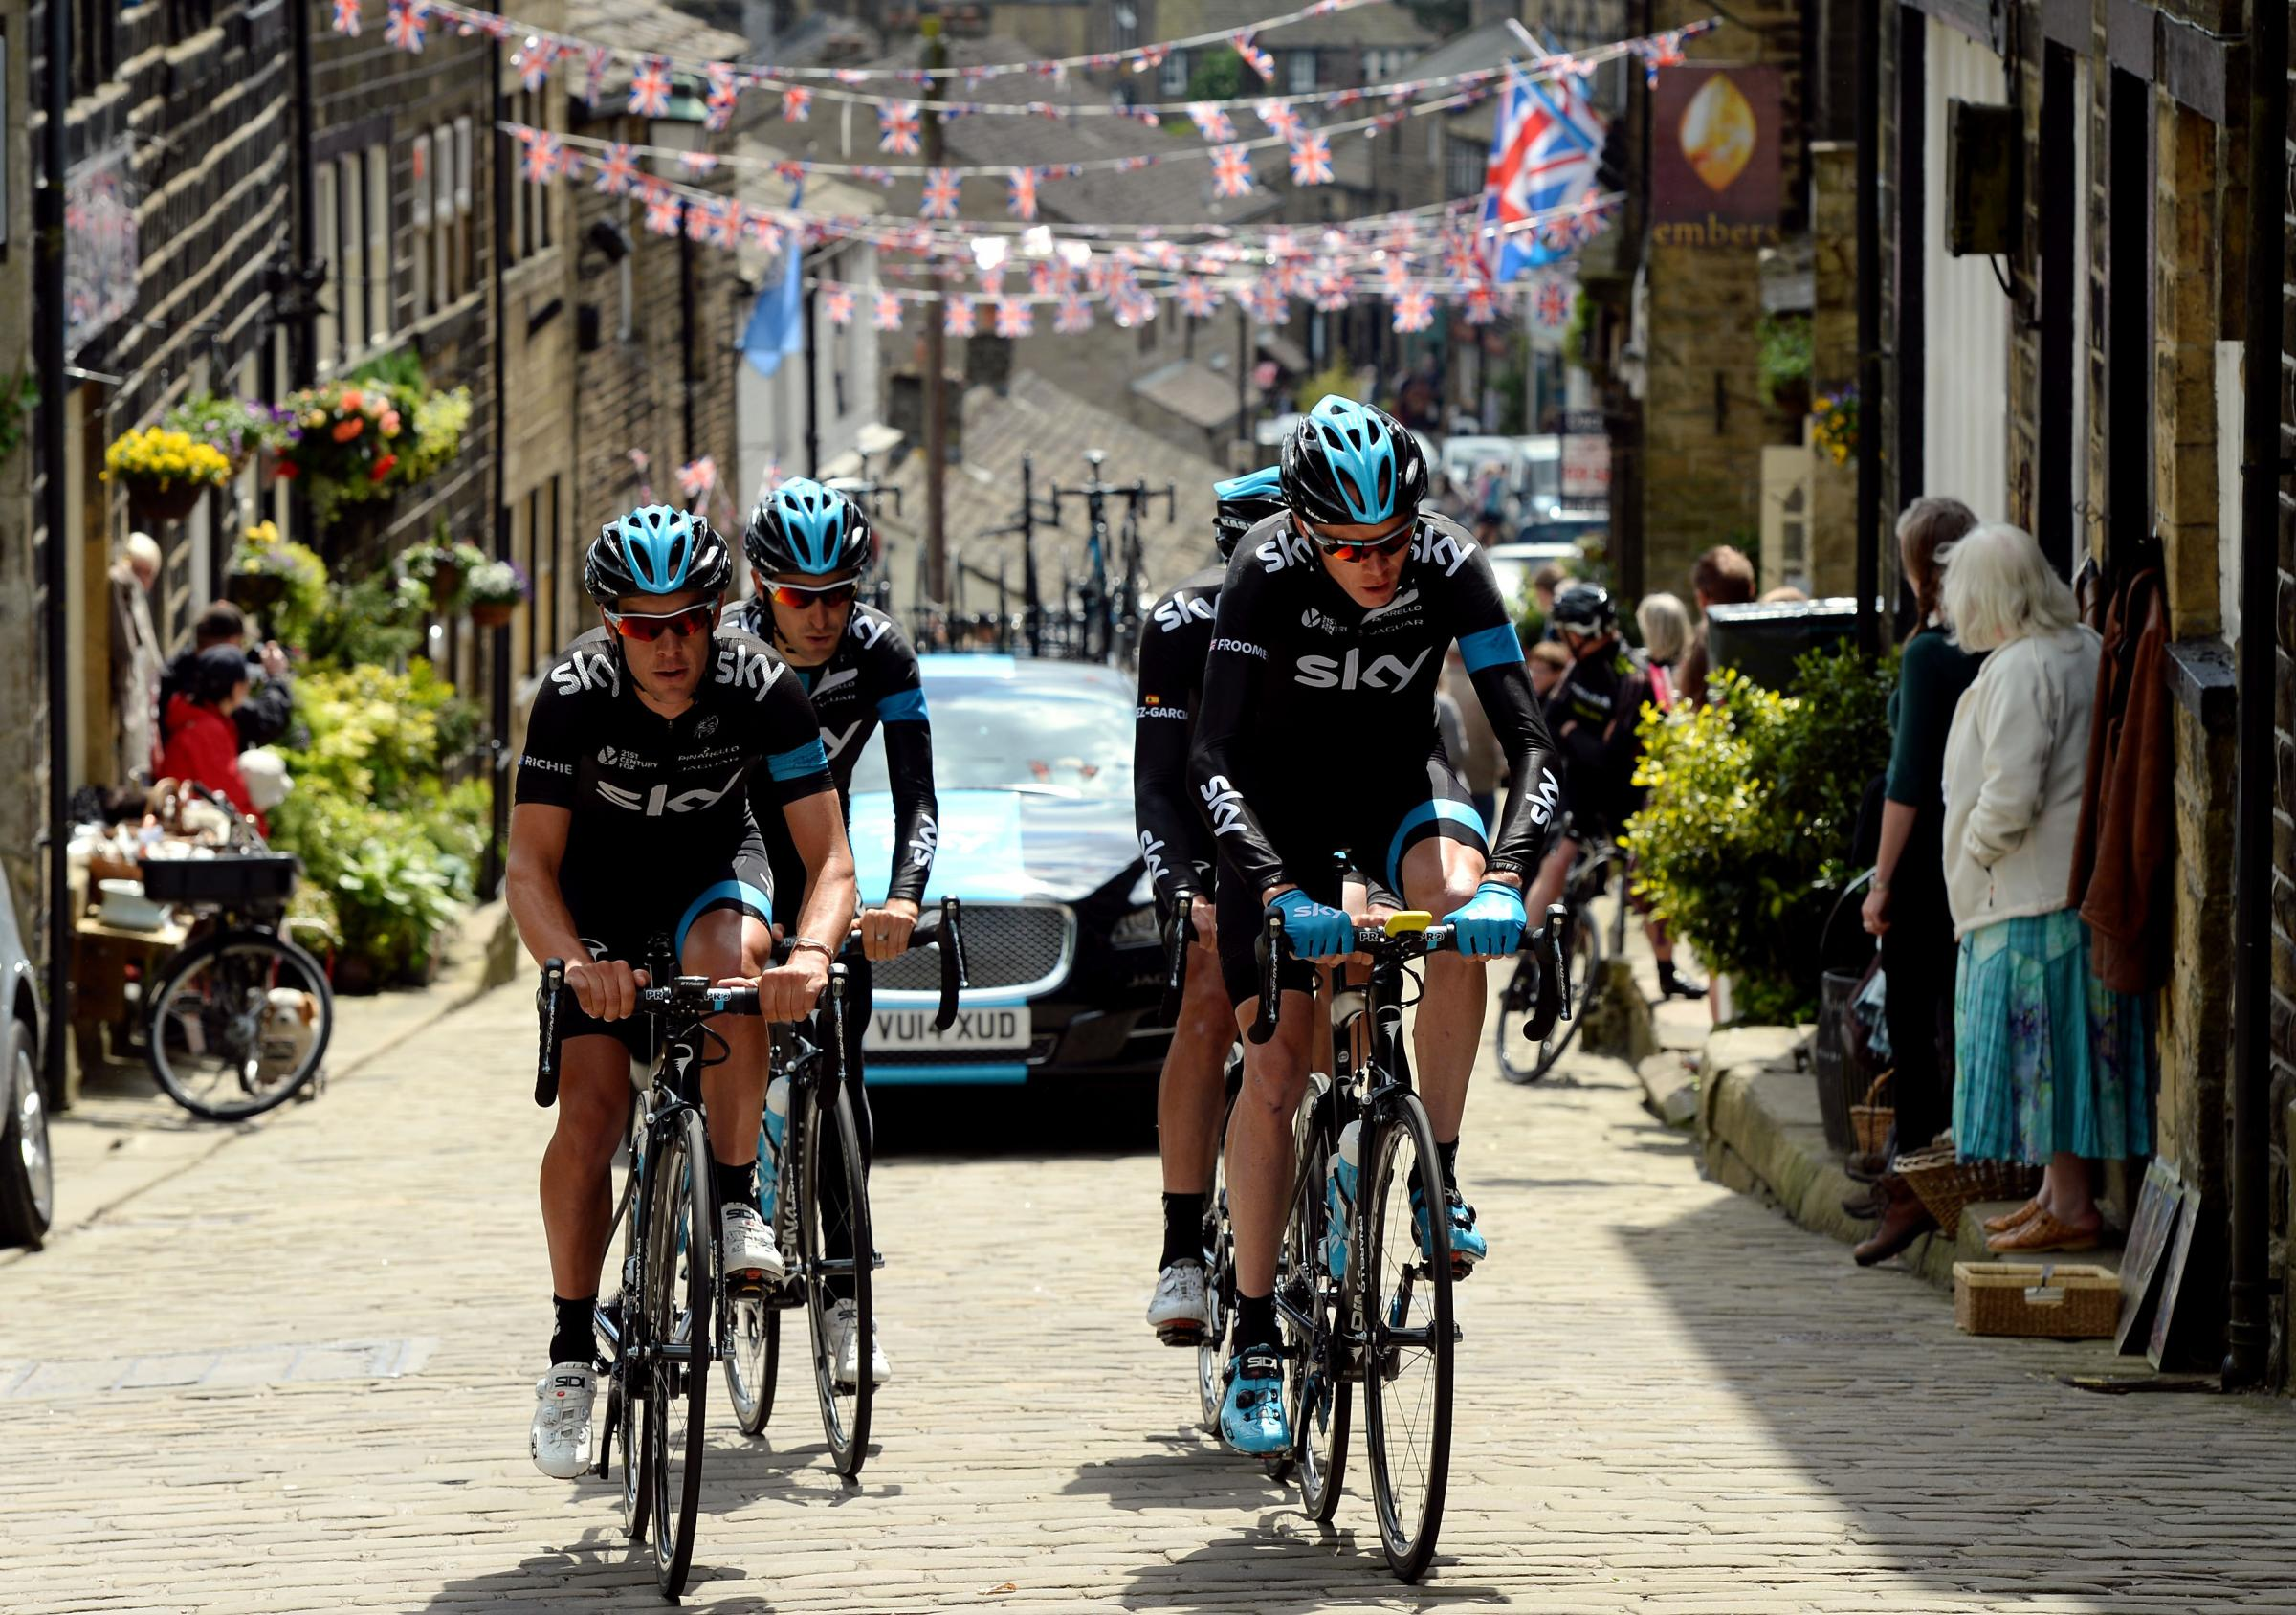 Swift action to tackle Haworth power cut on eve of Tour